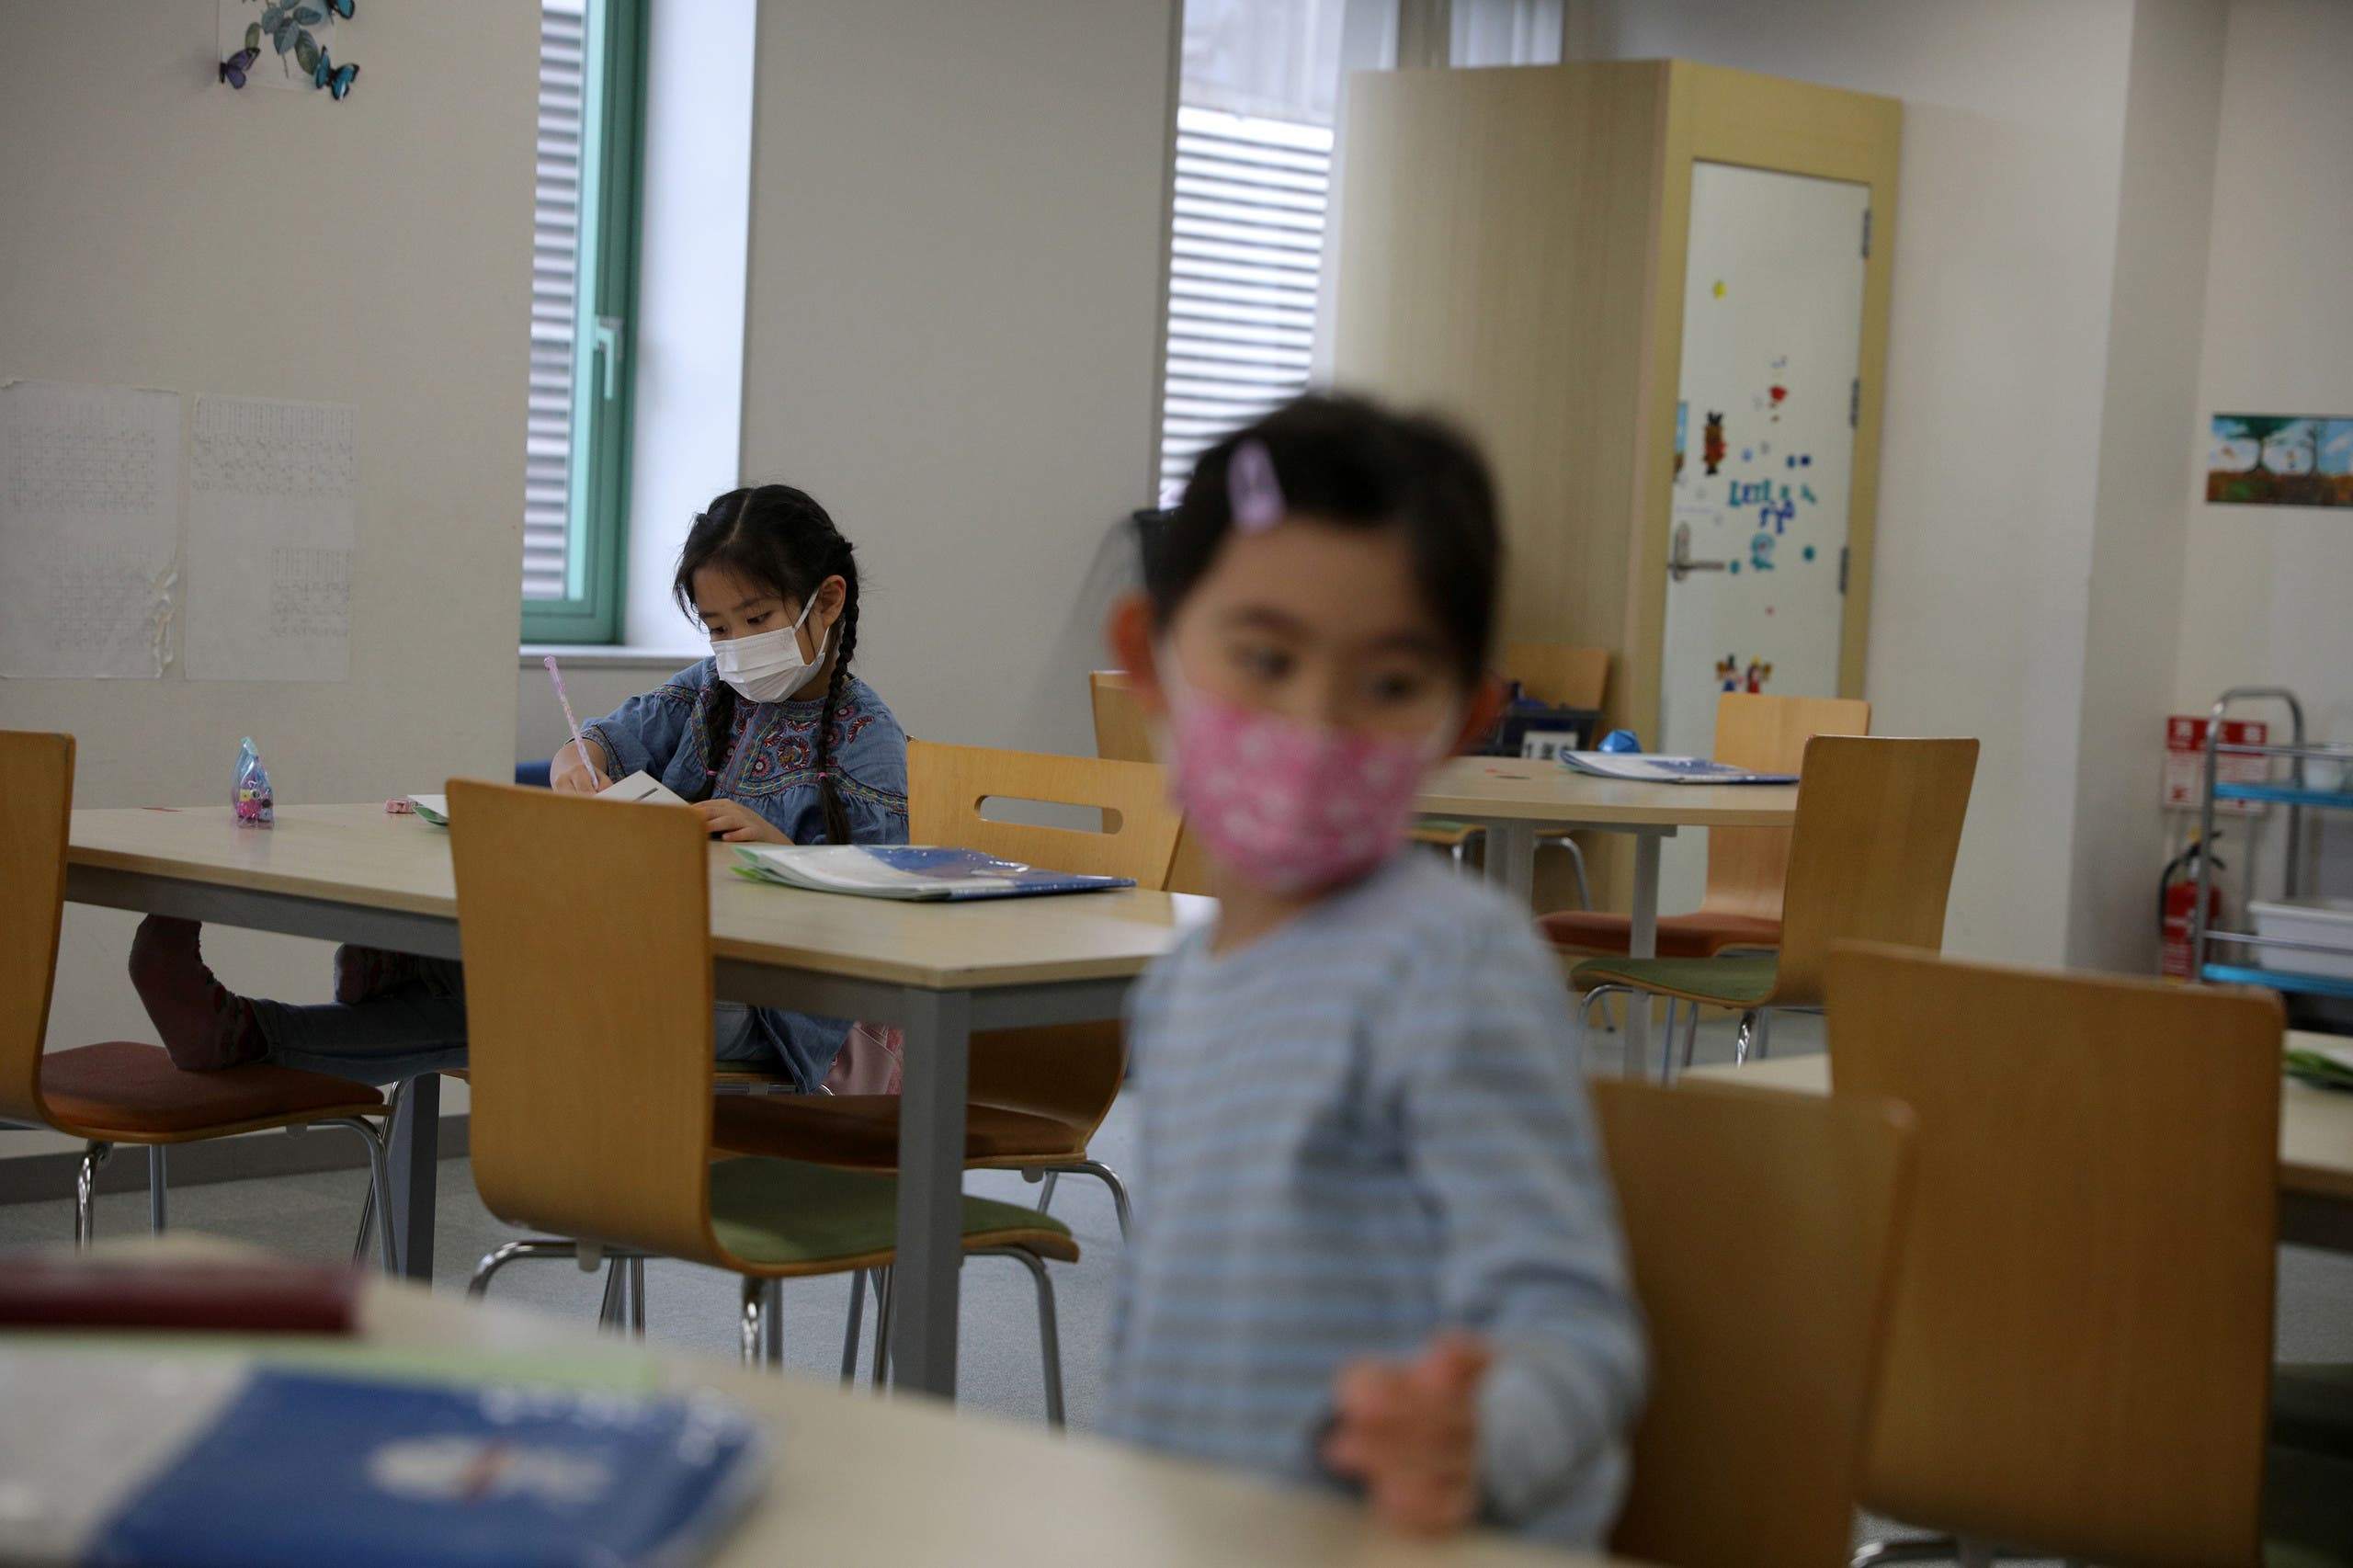 Children, wearing protective face masks, following an outbreak of coronavirus, are seen at a daycare center in Tokyo, Japan, March 5, 2020. (Reuters)